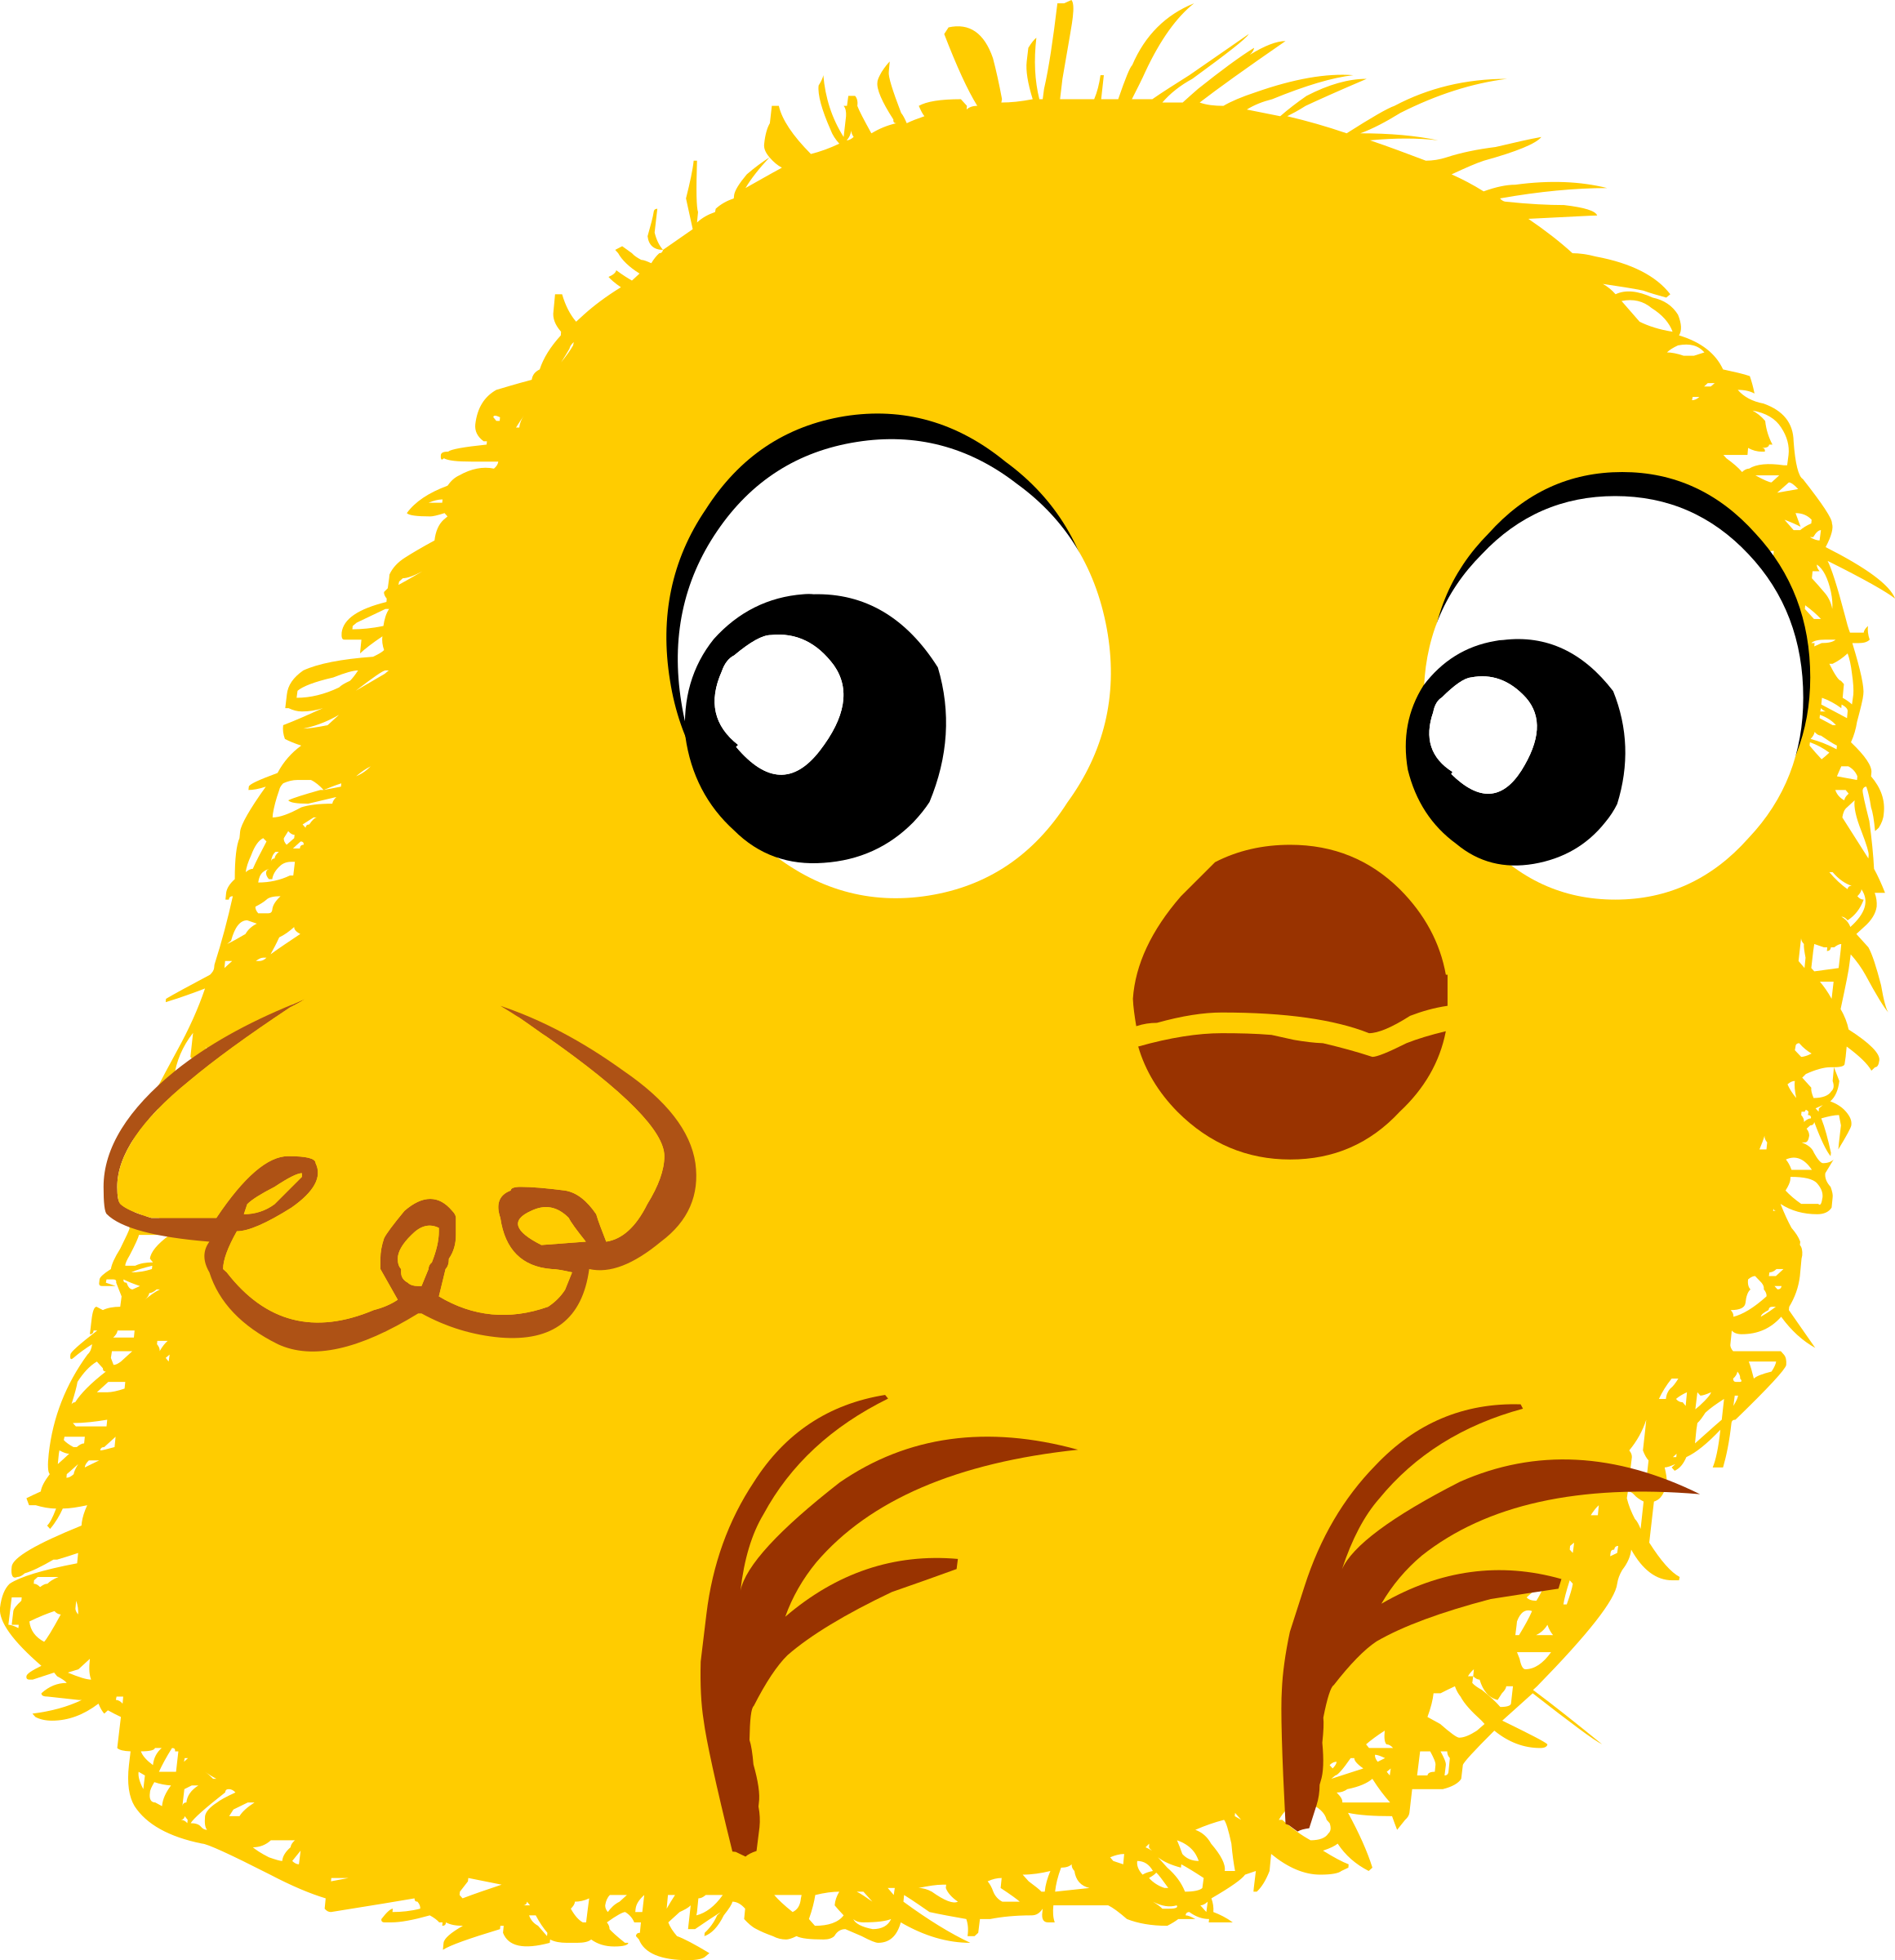 Glitch clipart yellow BIG Inhabitants Clipart IMAGE Chick